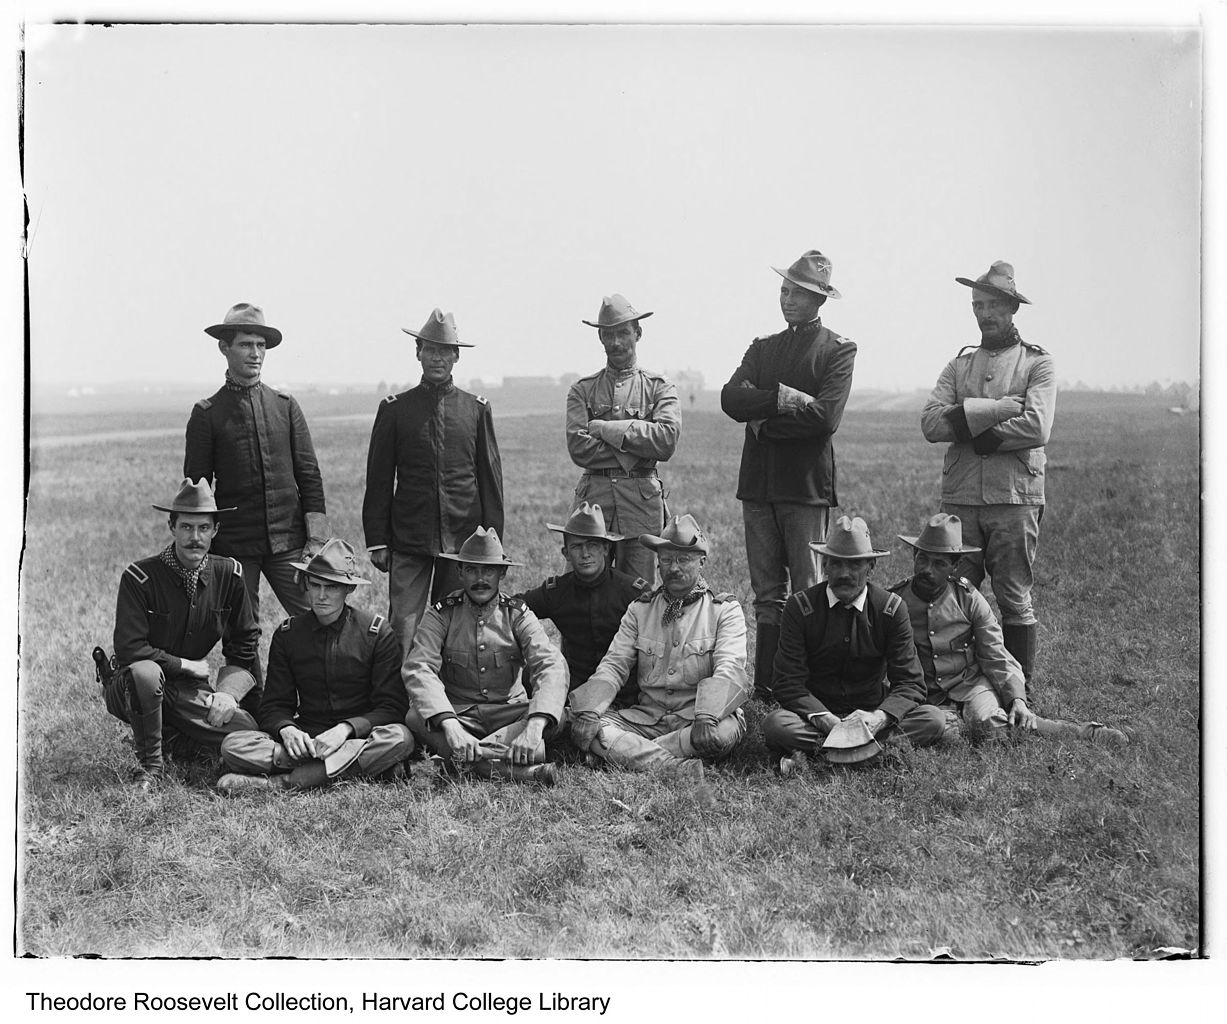 Twelve men pose in ten-gallon hats in a field of grass.